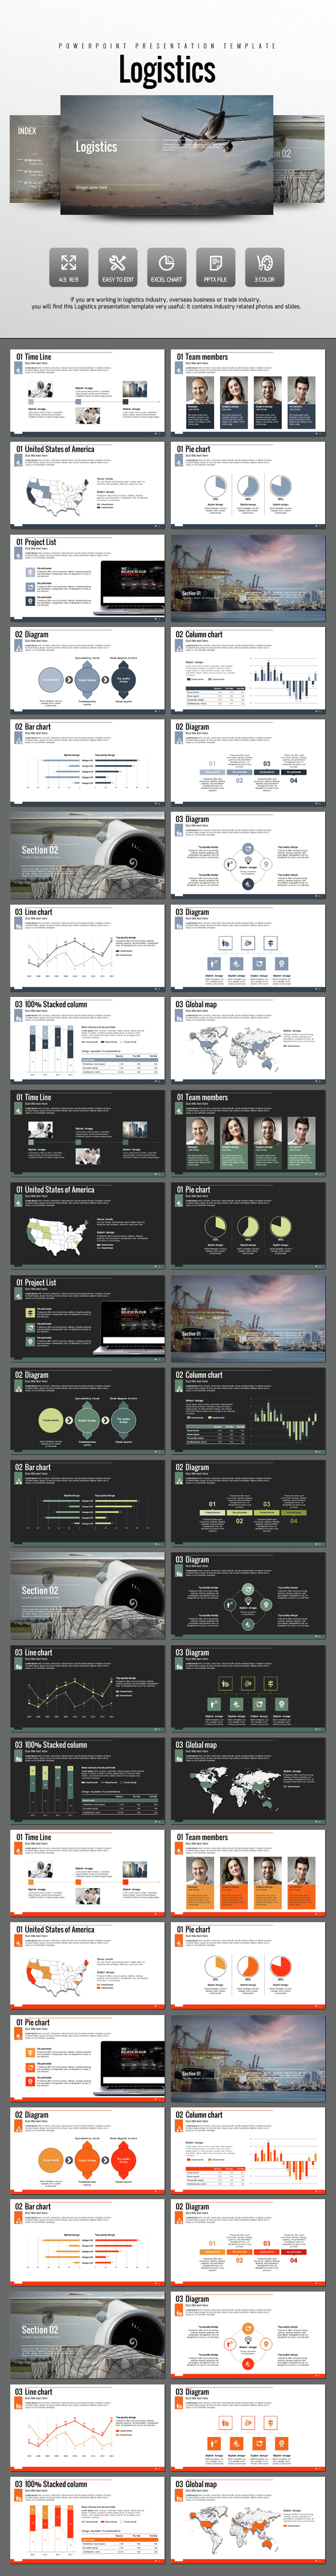 Logistics - PowerPoint Templates Presentation Templates